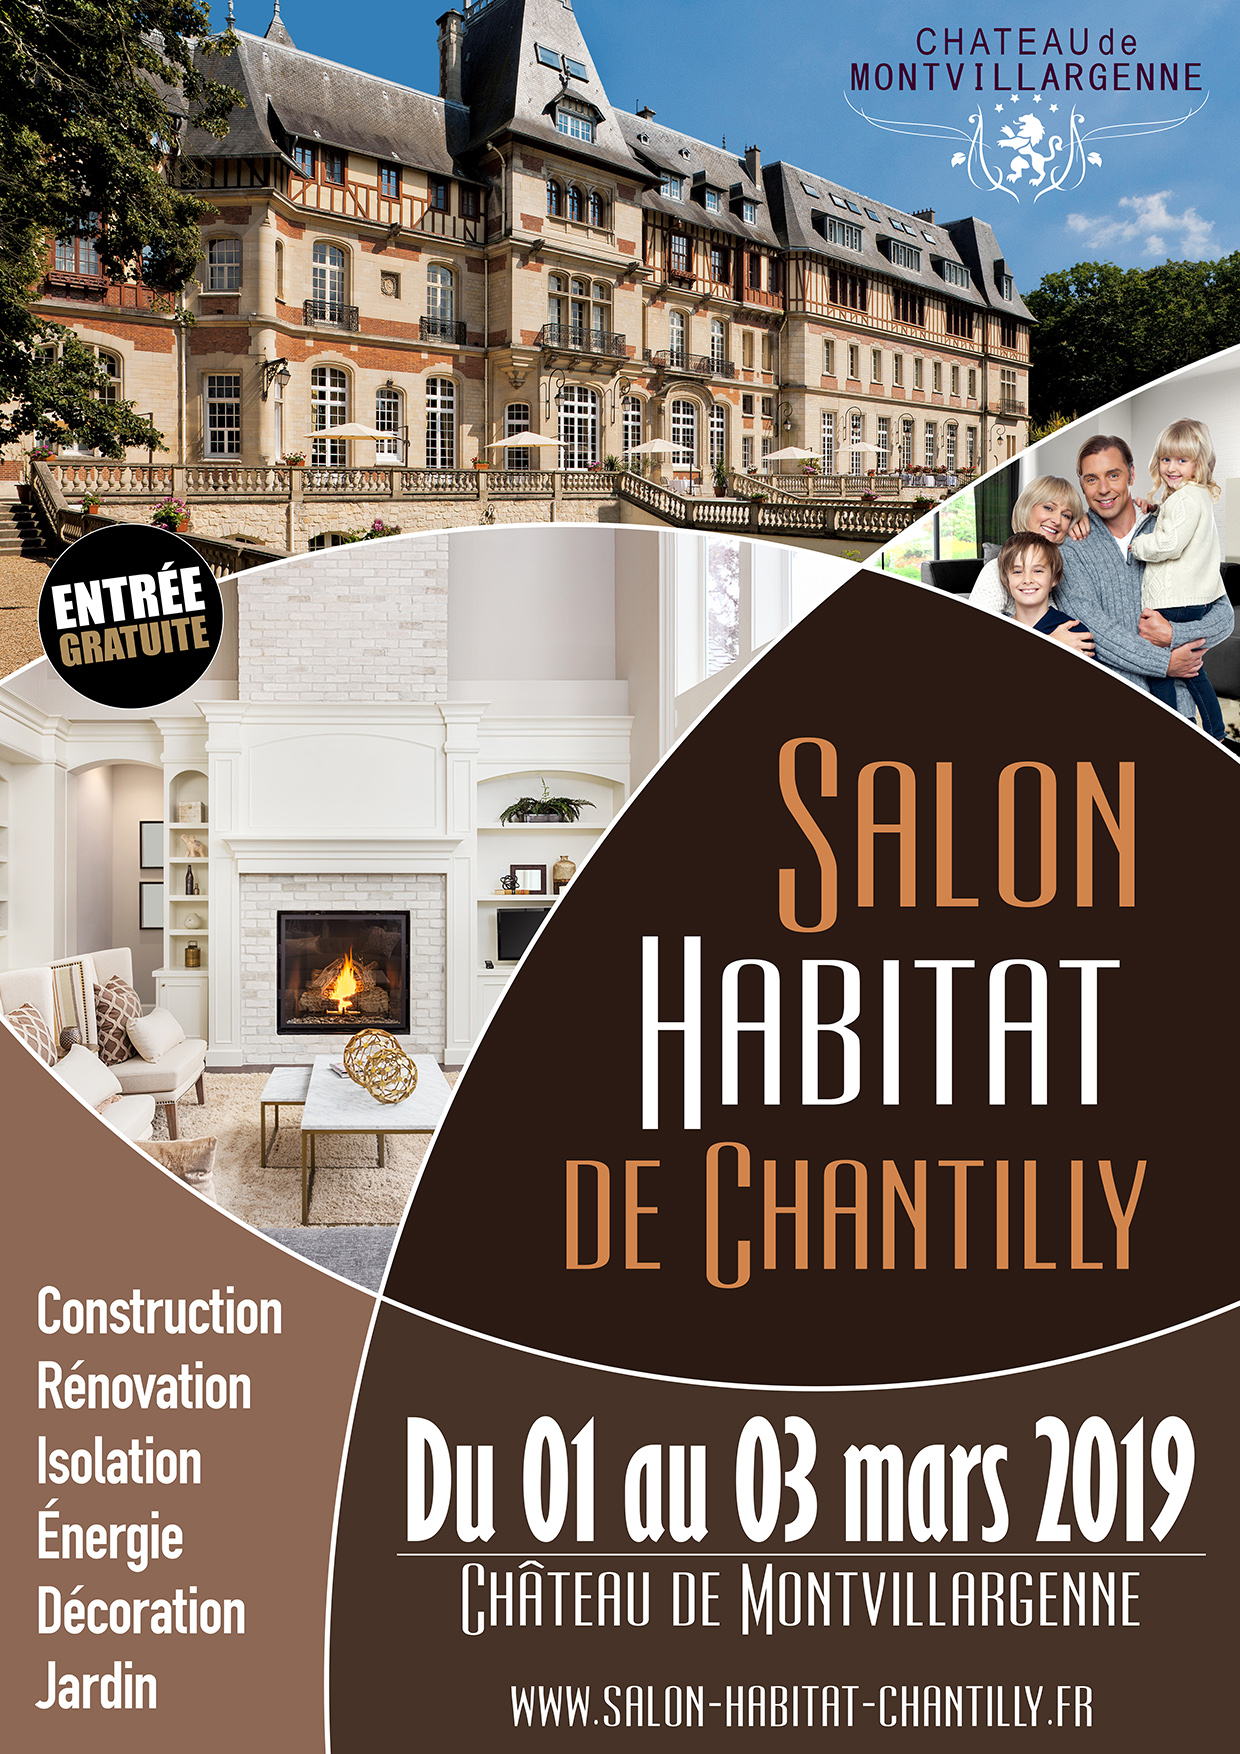 Salon de l'Habitat de Chantilly du 01 au 03 Mars 2019